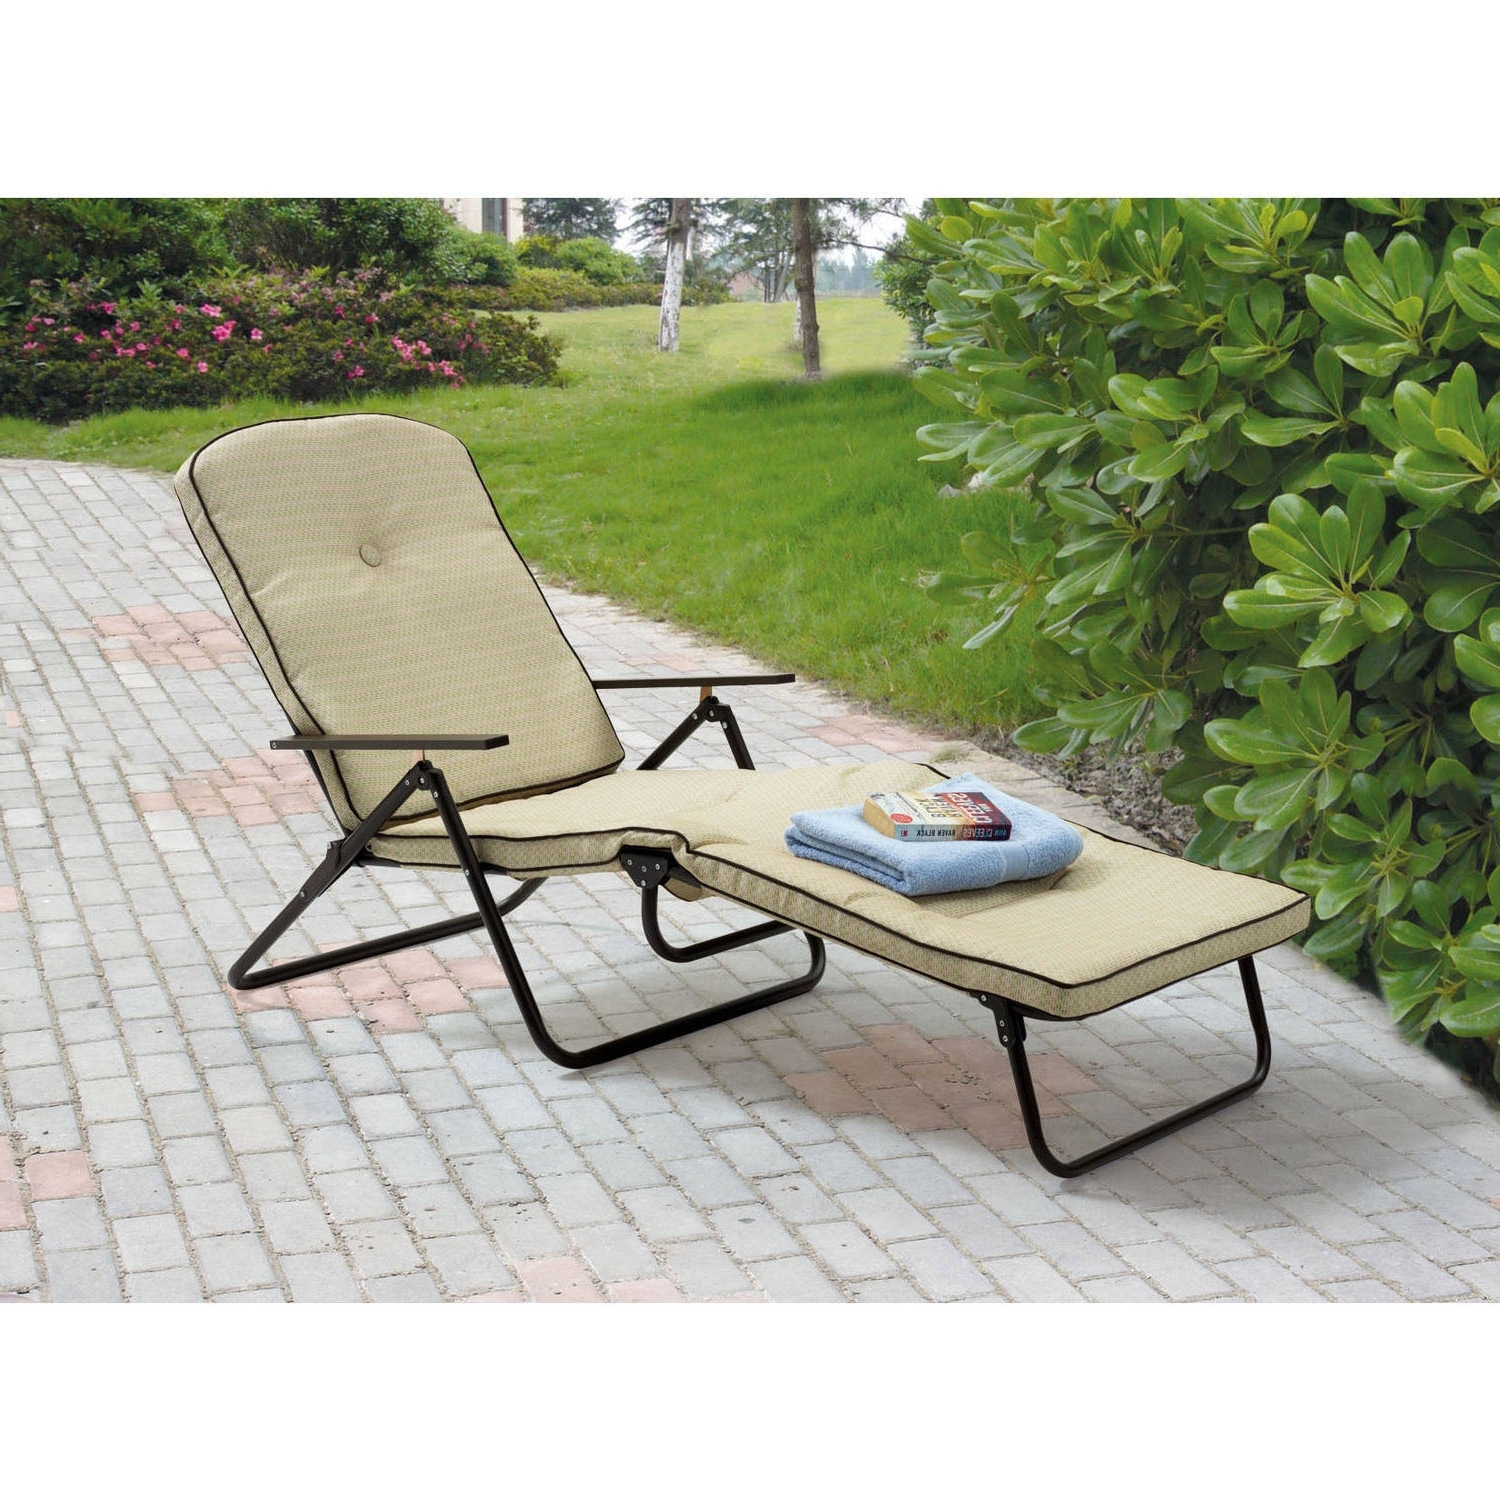 Walmart Chaises Intended For Most Current Mainstays Sand Dune Outdoor Padded Folding Chaise Lounge, Tan (View 14 of 15)